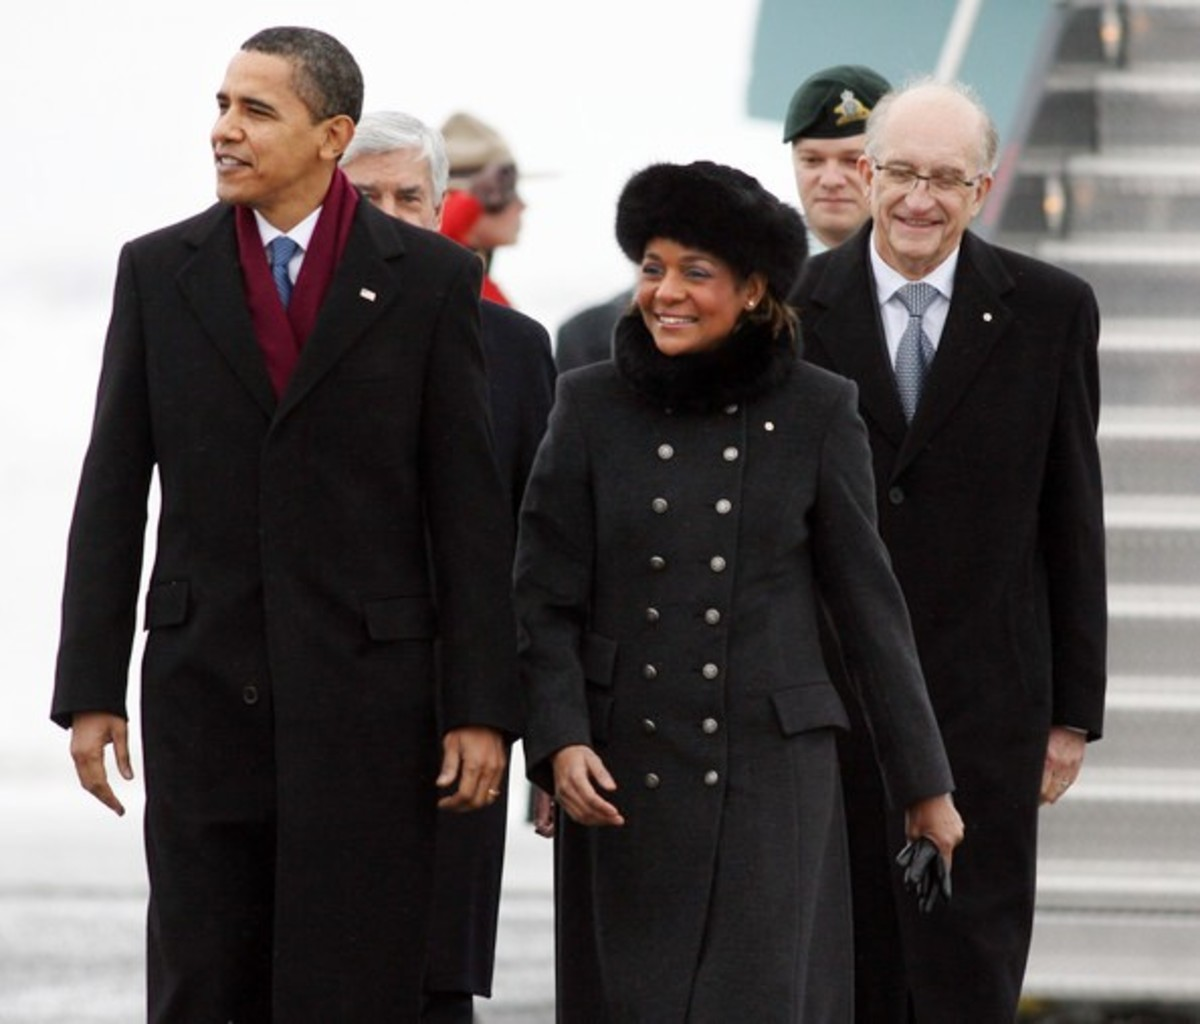 U.S. President Barack Obama walks on the tarmac at Ottawa International Airport with Michalle Jean, 19 Feb 2009